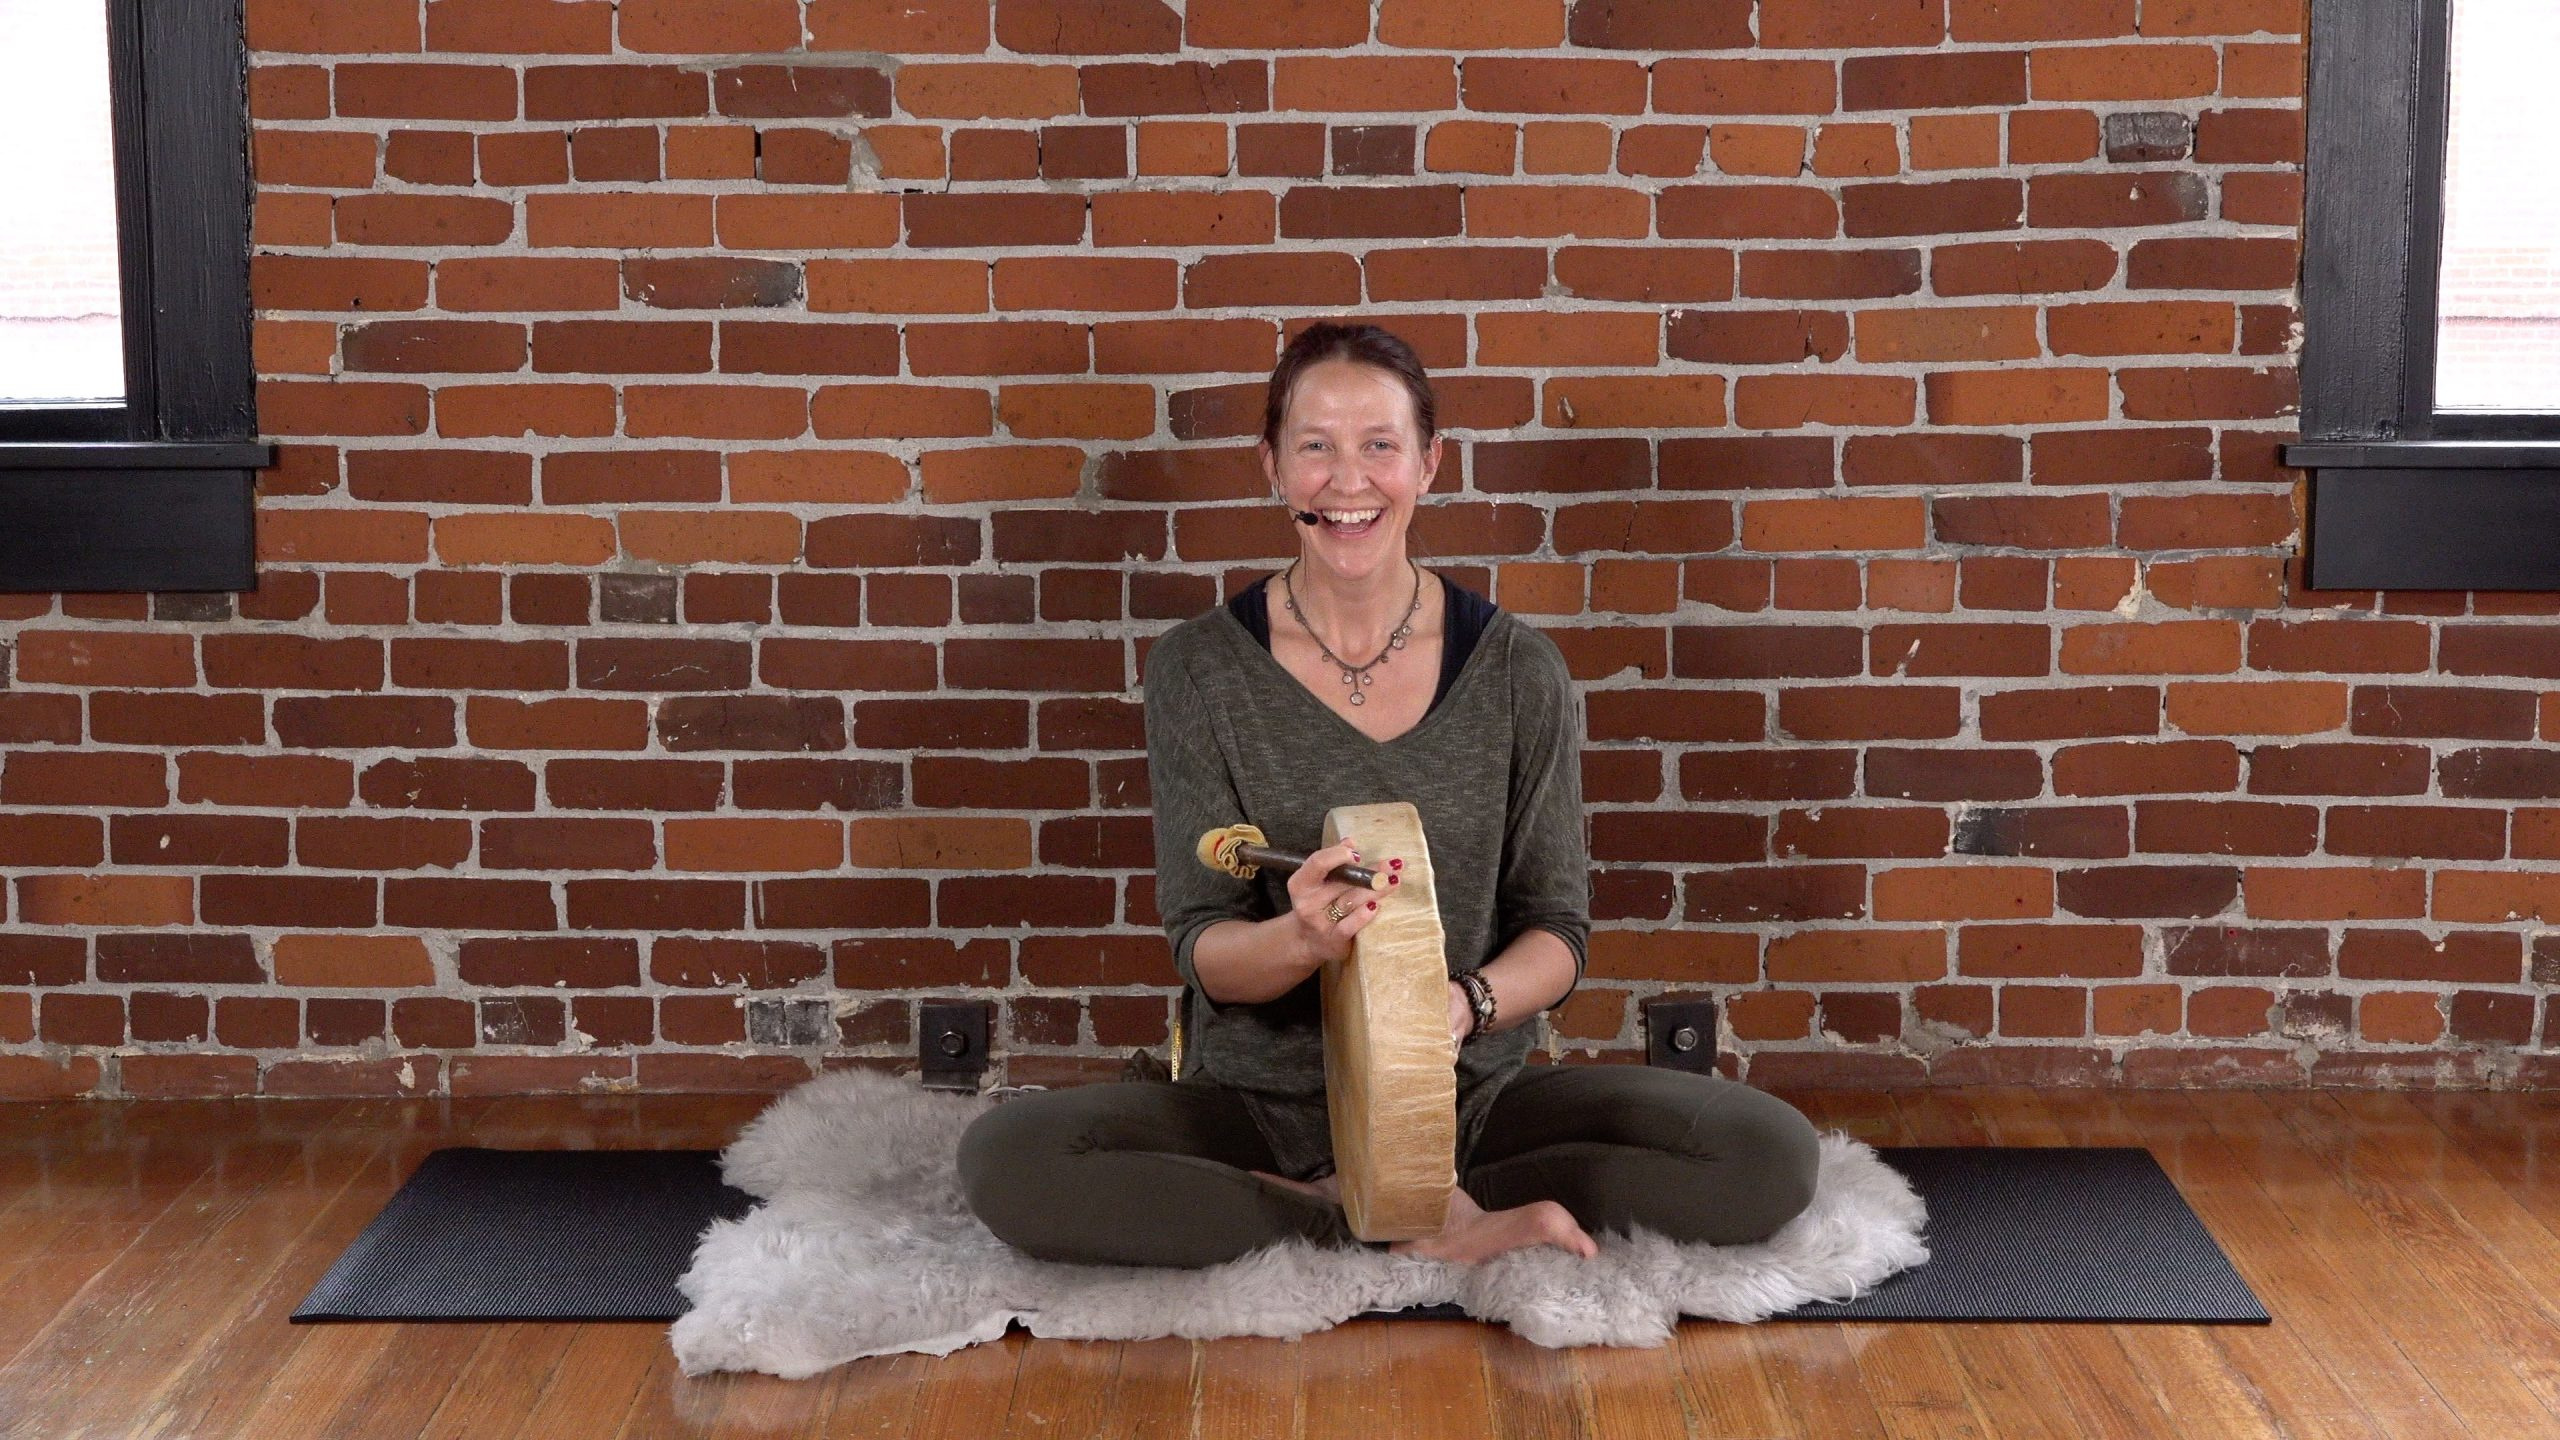 Emily Dalsfoist Leading an Earth Meditation at MamaSpace Yoga